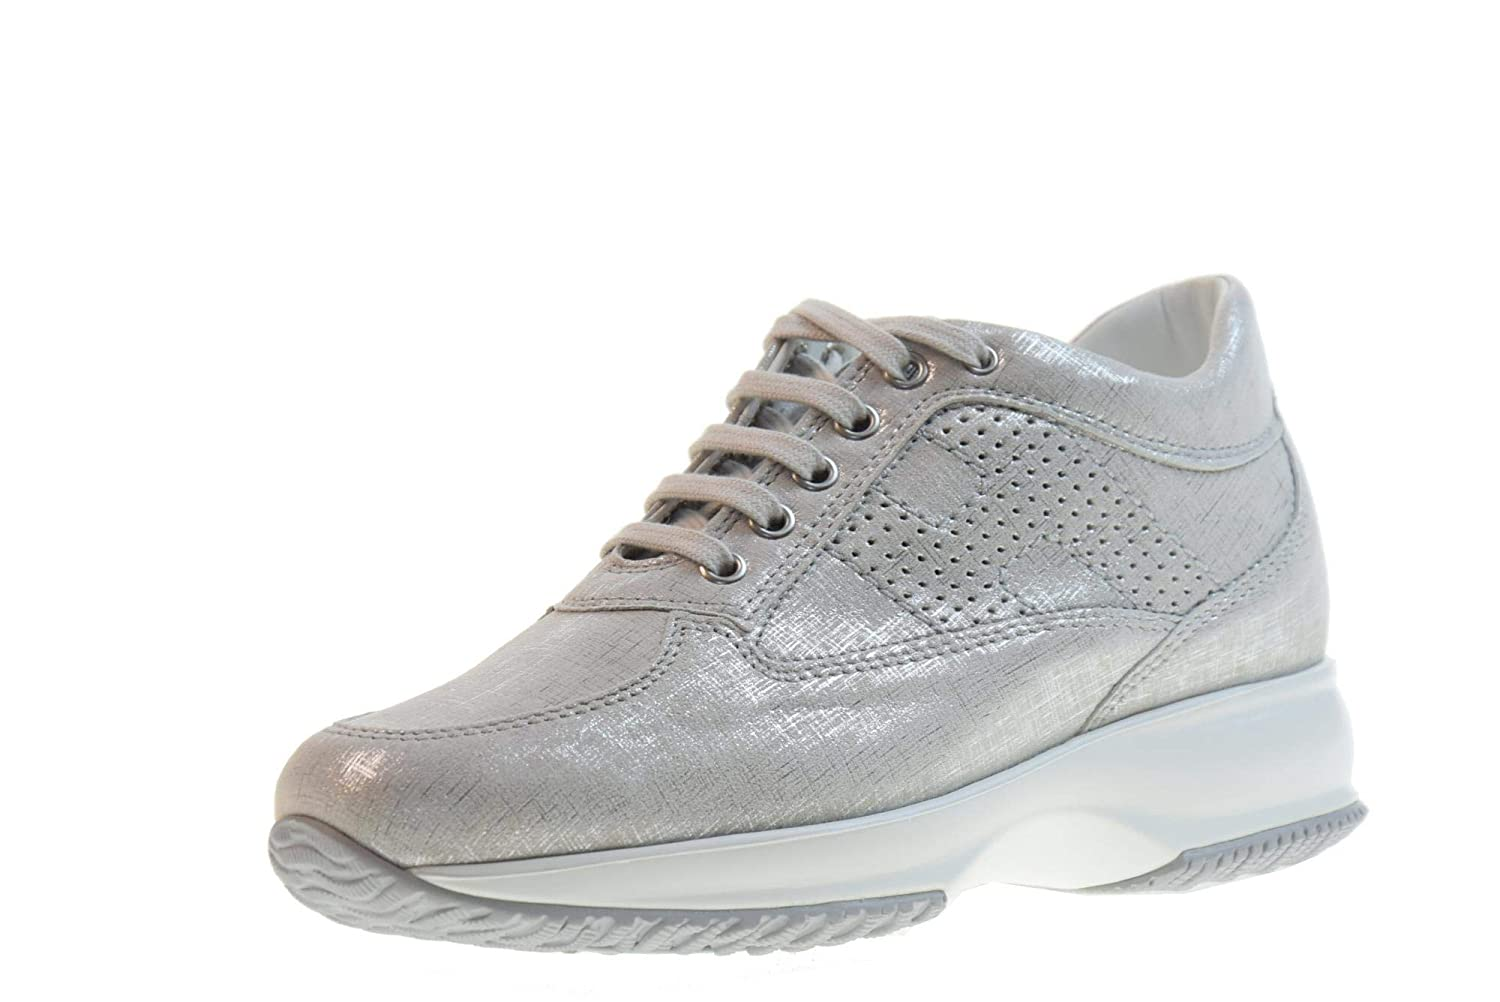 Ice Hogan shoes Woman Low Sneakers HXW00N00E30KAYB002 Interactive H BUCATA